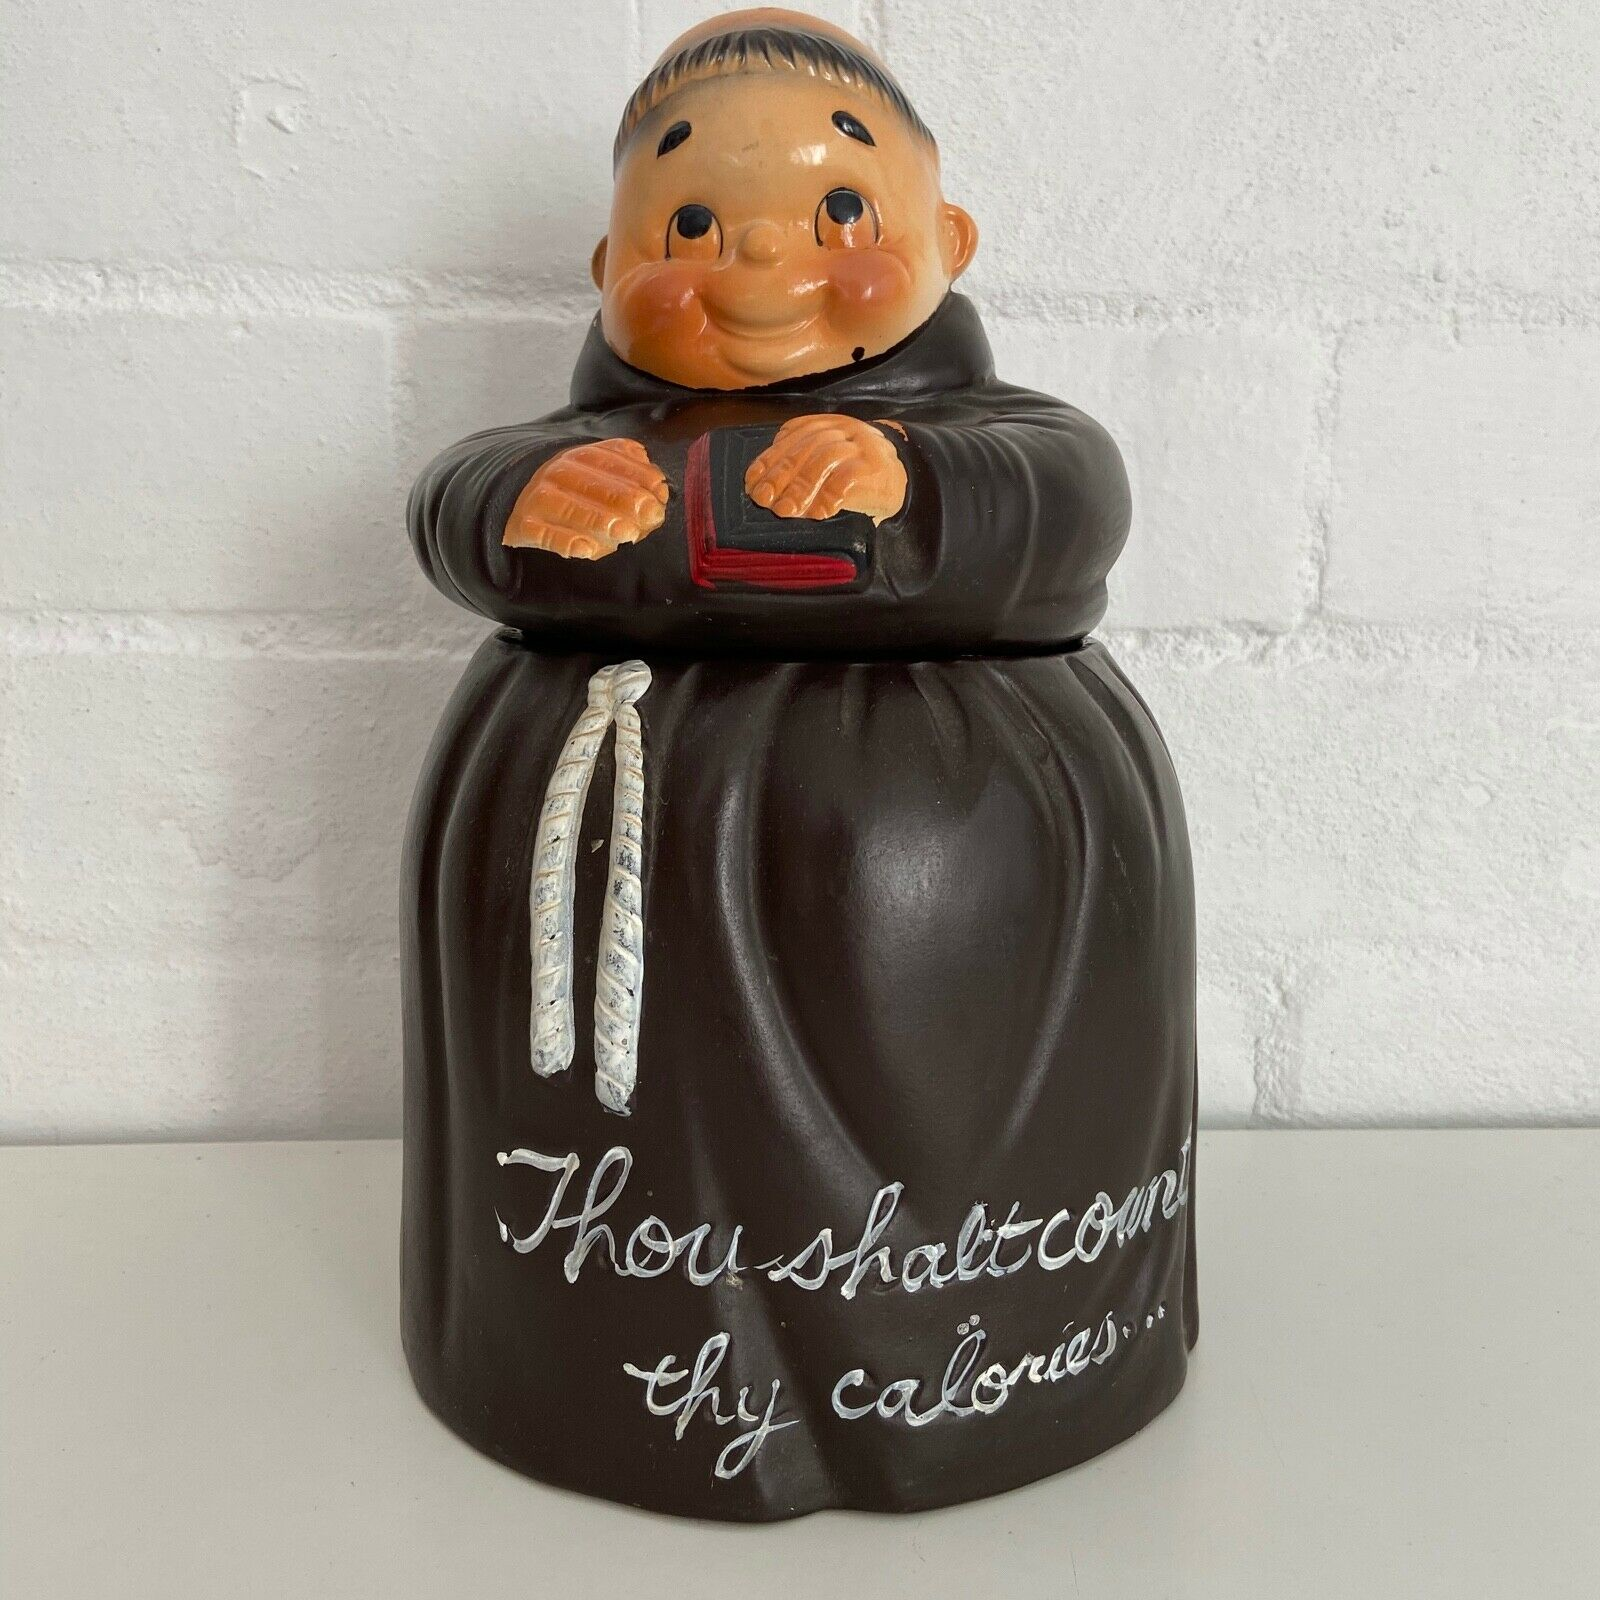 VINTAGE FRIAR TUCK Thou Shalt Count Thy Calories COOKIE JAR JAPAN